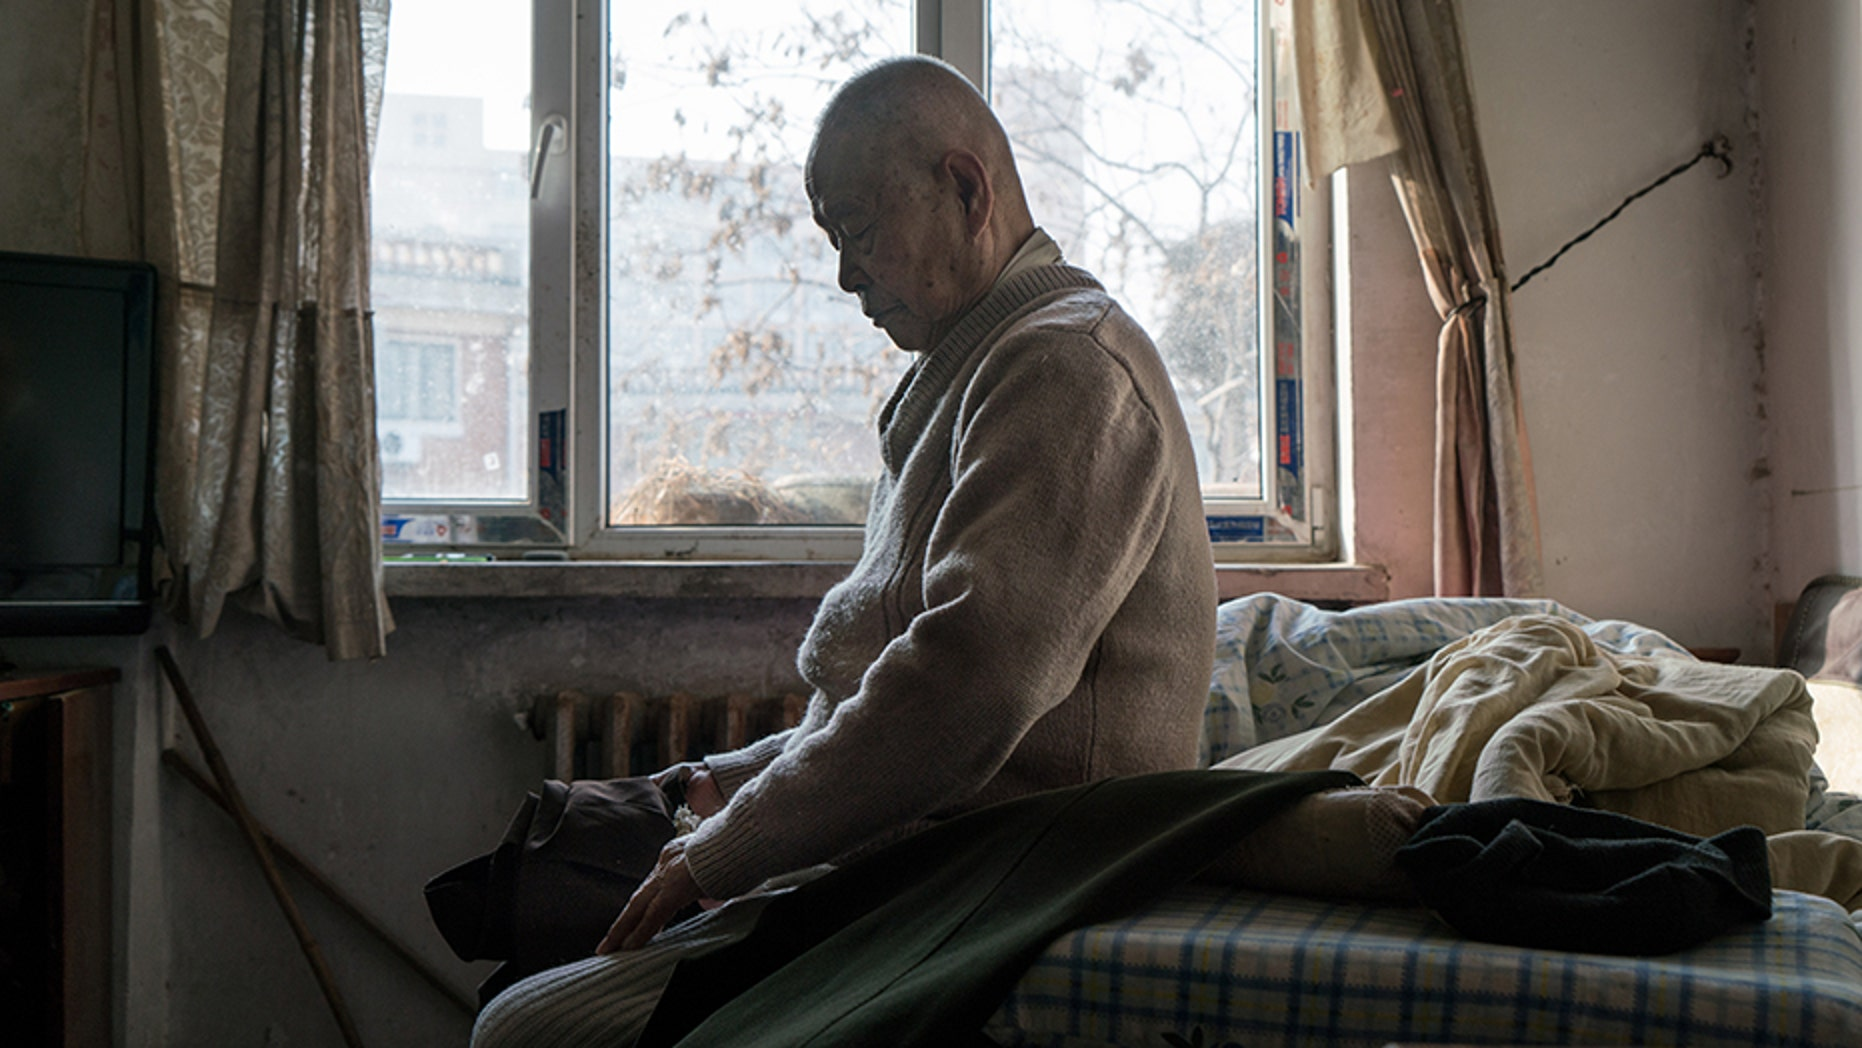 TIANJIN, CHINA - JANUARY 19: Han Zicheng, 85, sits in bed to take off his pants, revealing the wool pants inside that he usually wears at home. (Photo by Yan Cong for The Washington Post via Getty Images)